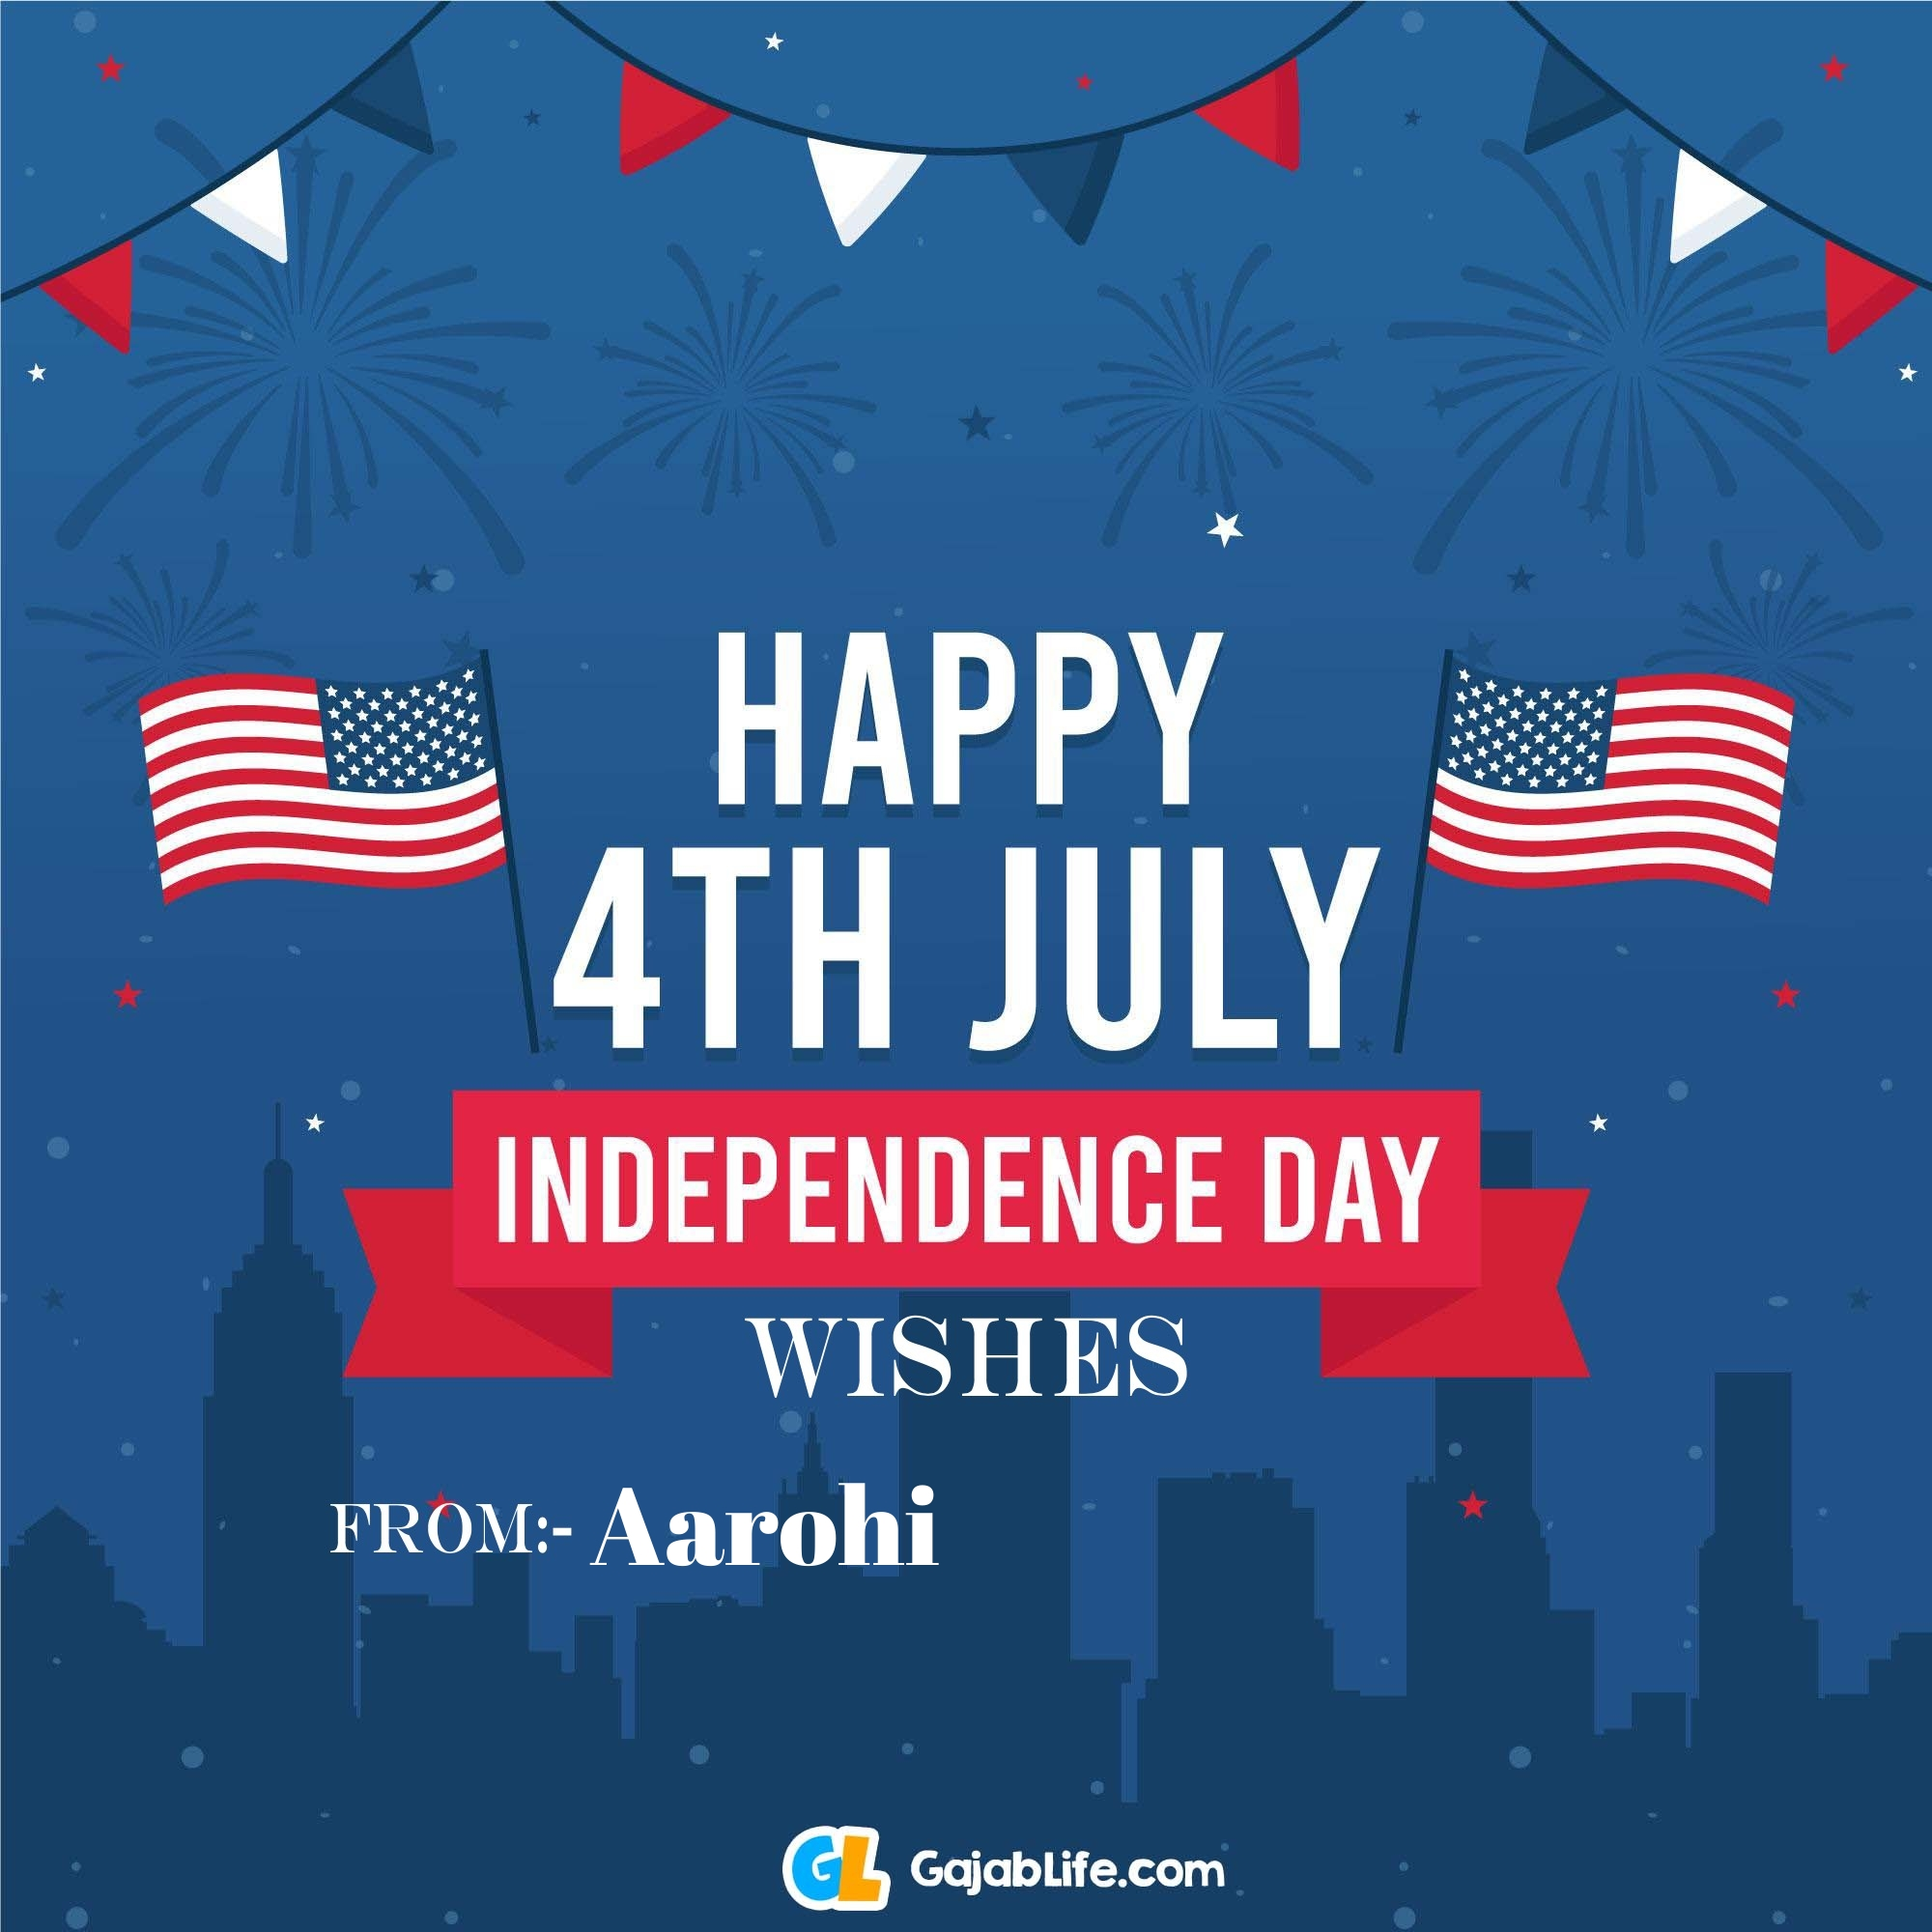 Aarohi happy independence day united states of america images